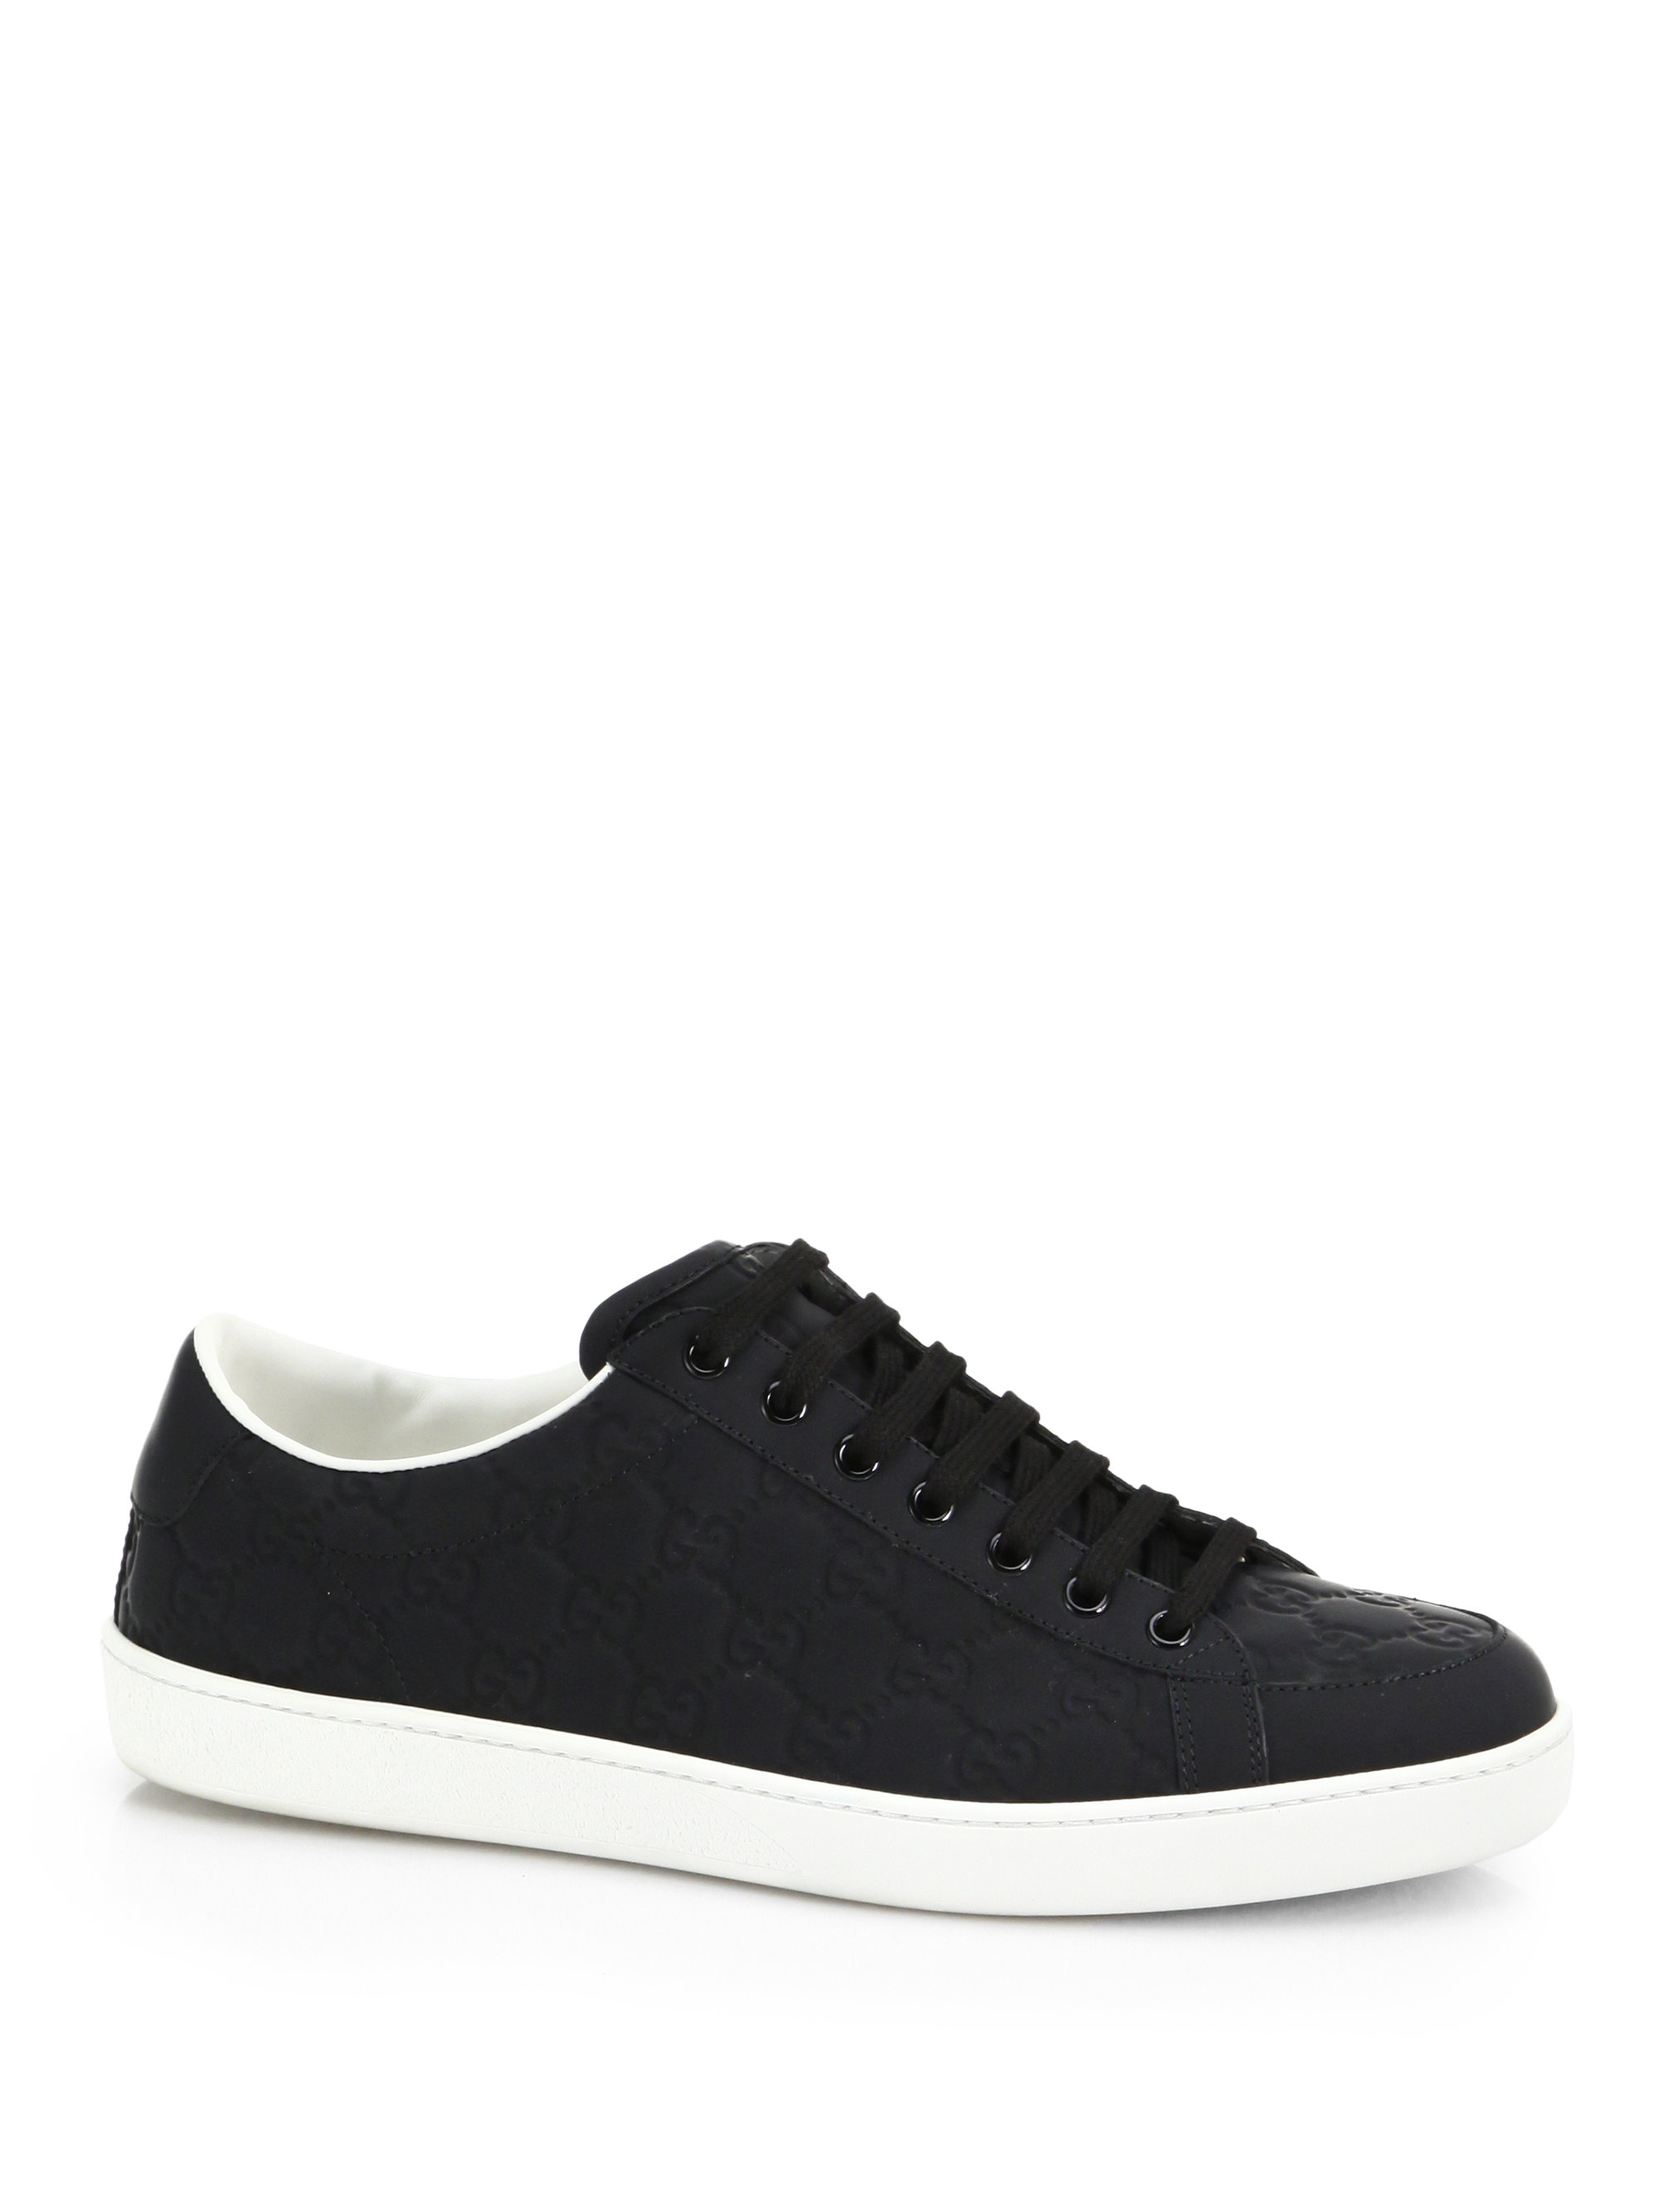 507be064294 Lyst - Gucci Brooklyn Gg Lace-up Sneakers in Black for Men